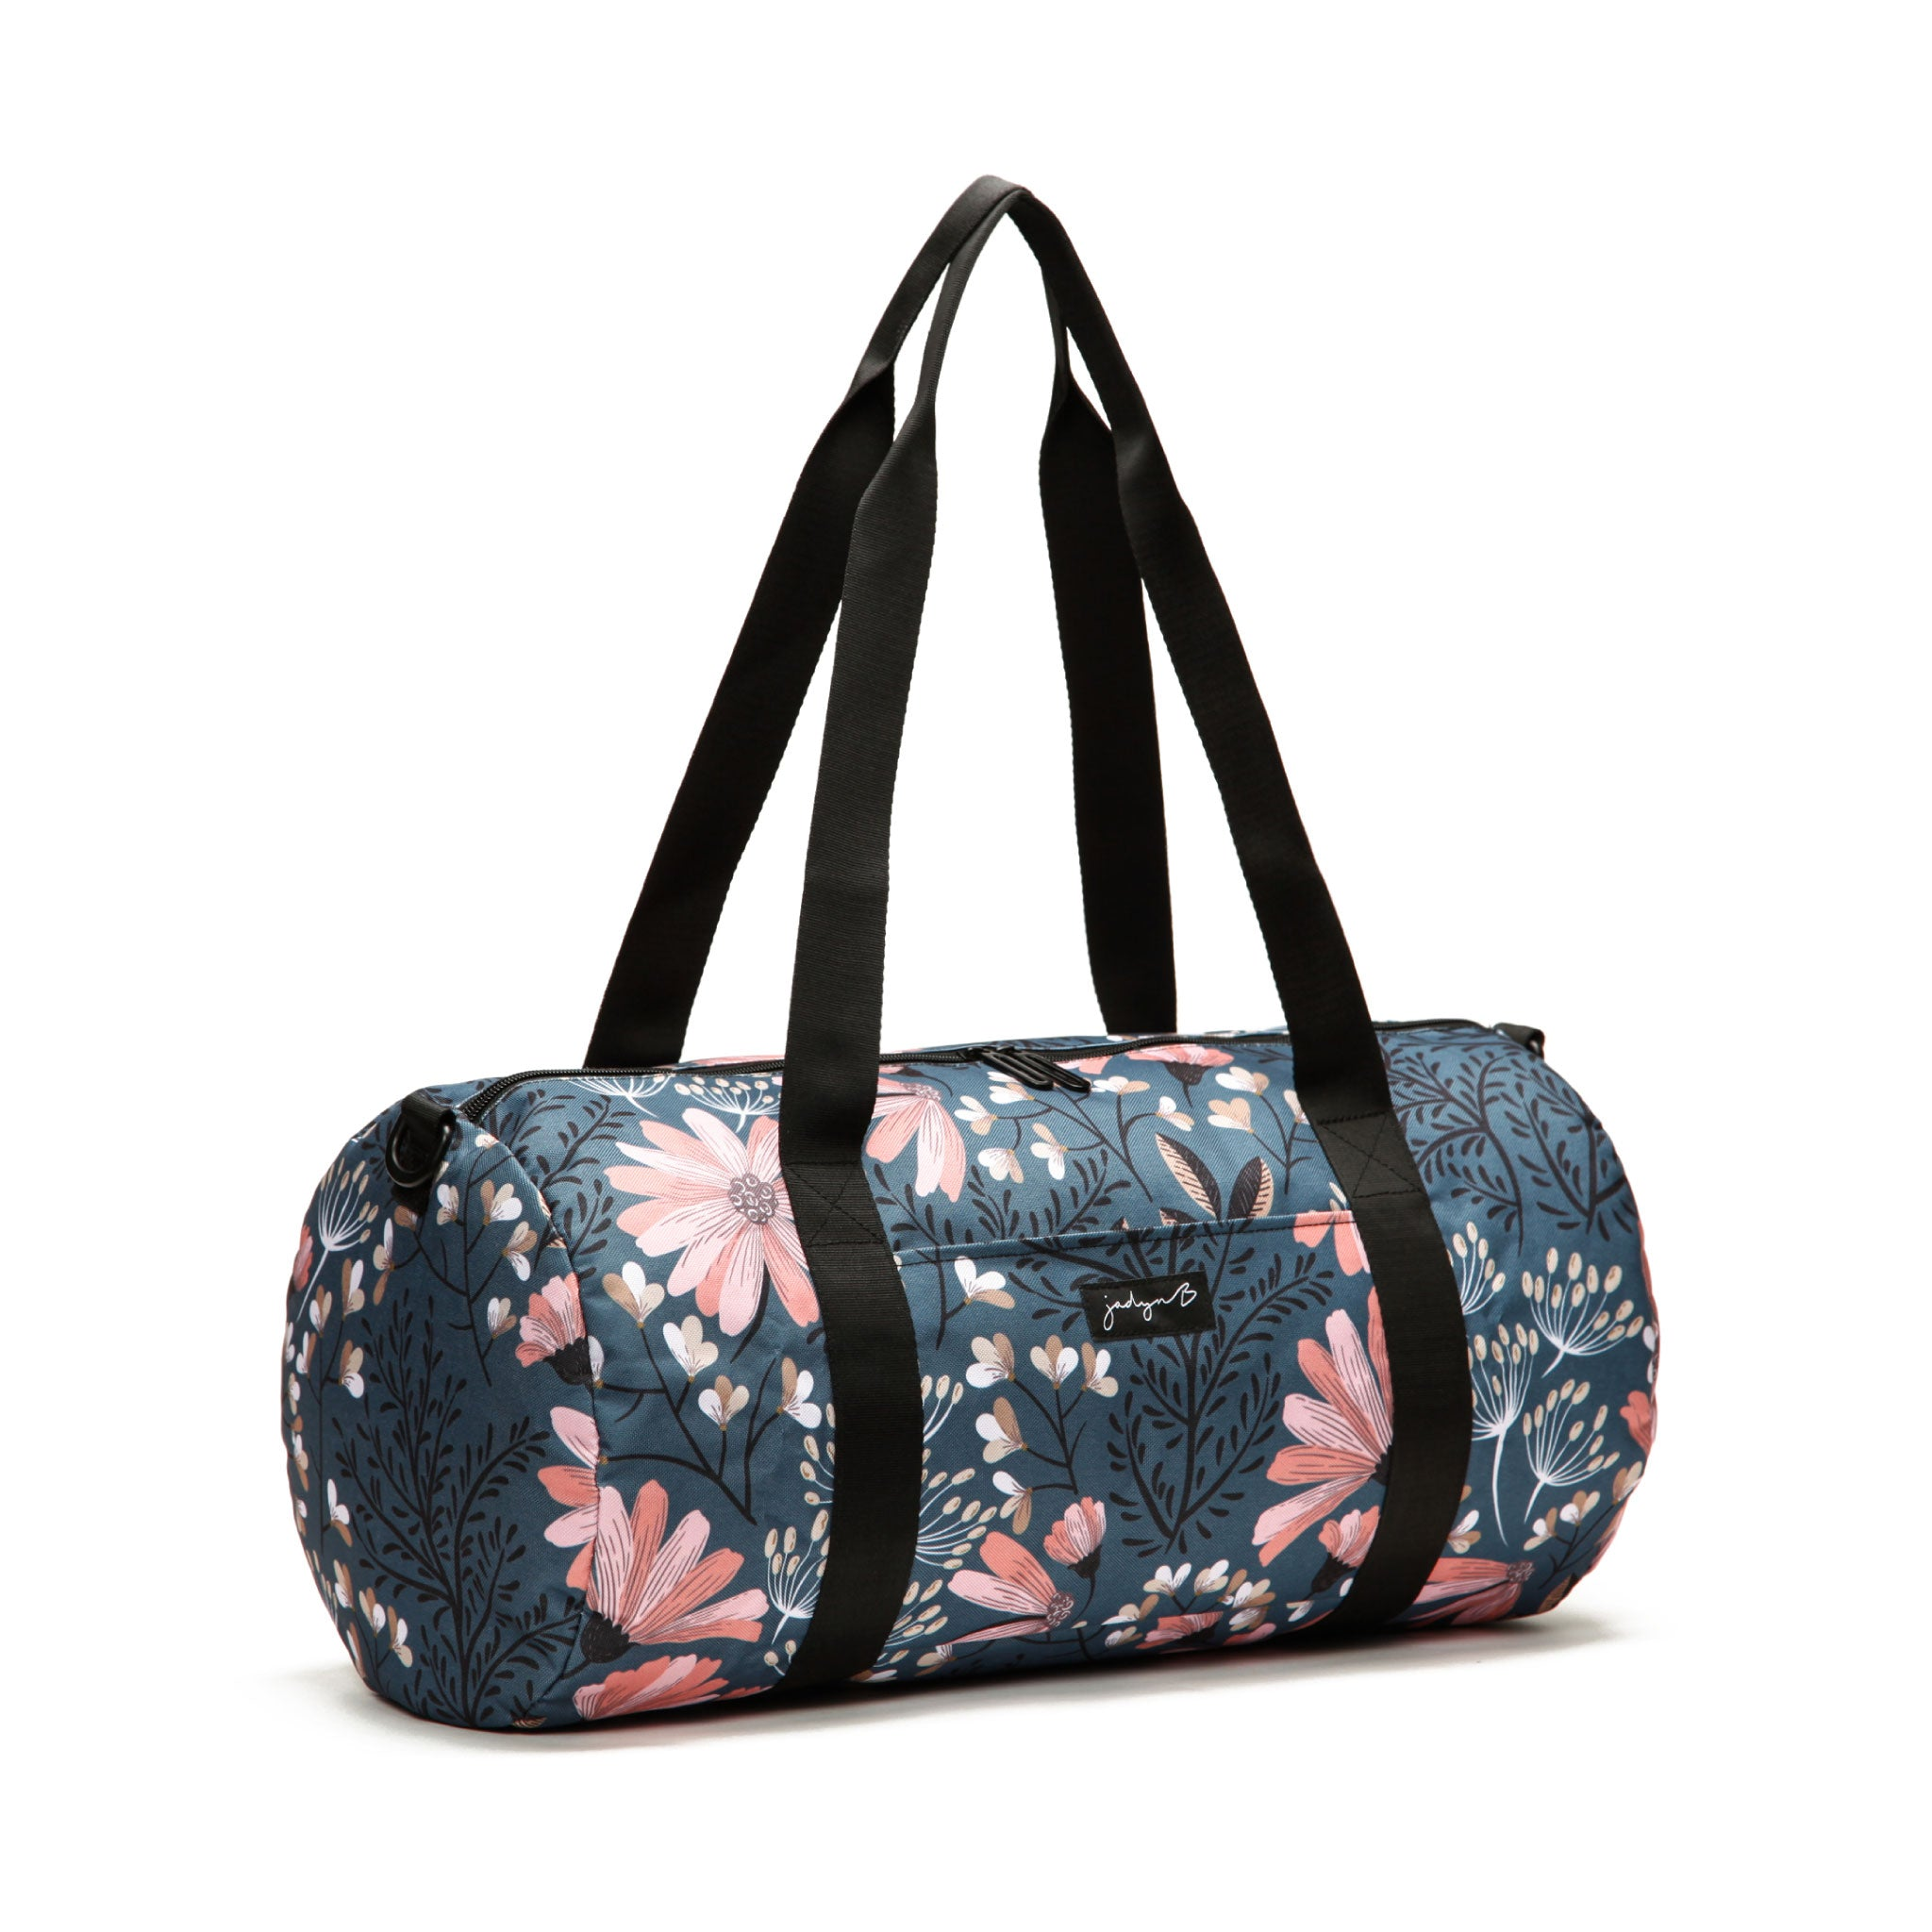 Barrel Duffle - Navy Floral